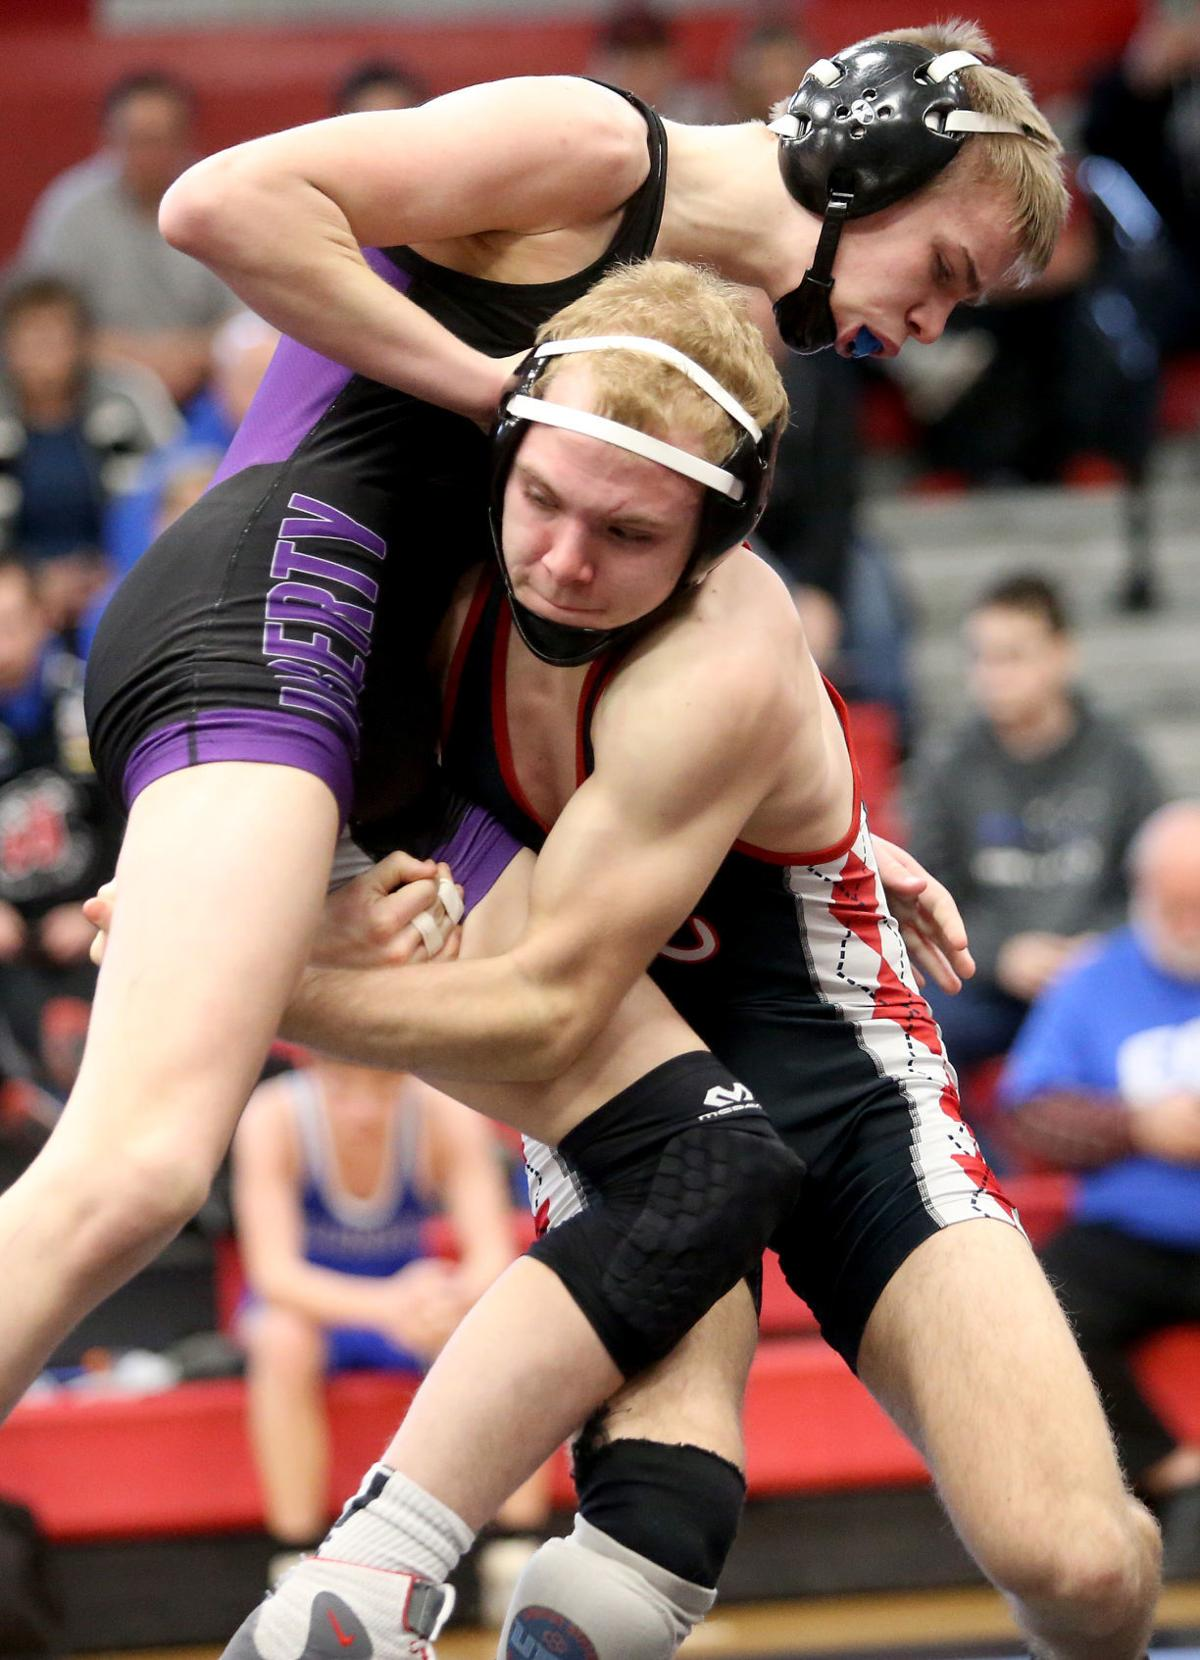 020318-sectional-wrestling-005